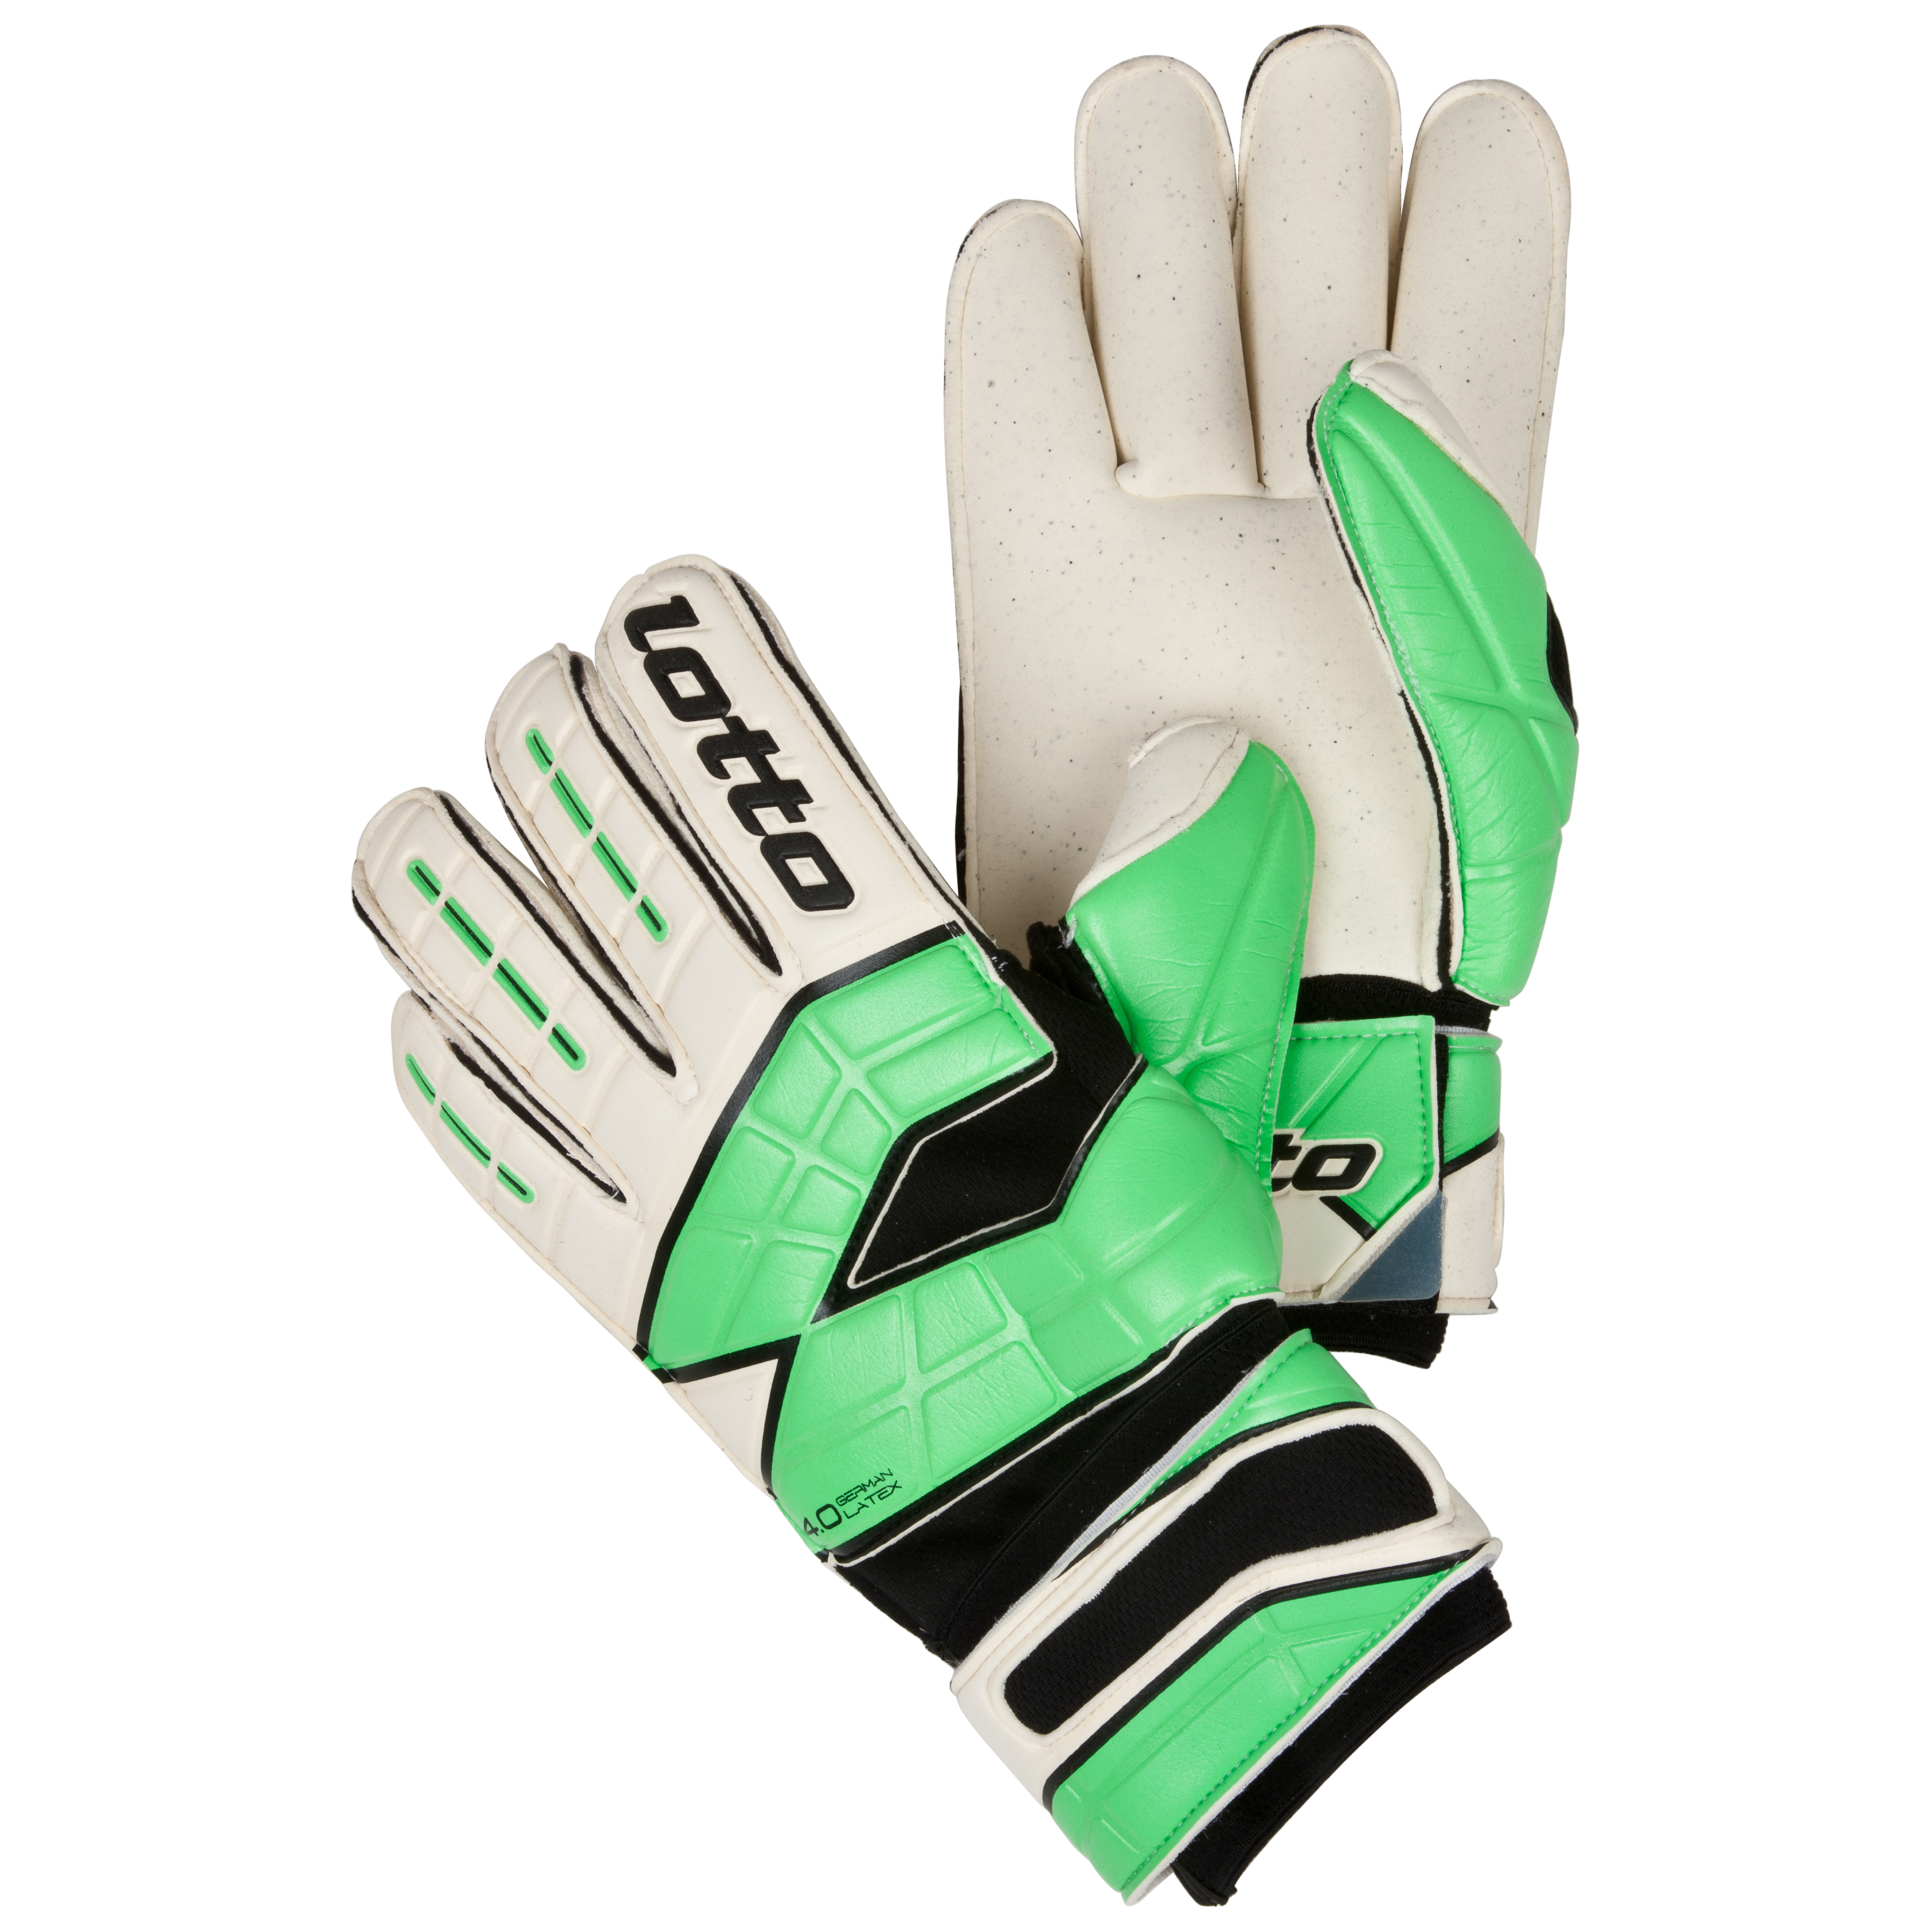 Lotto Gripster GK250 II Goalkeeper Gloves-White/Mt.N.Green